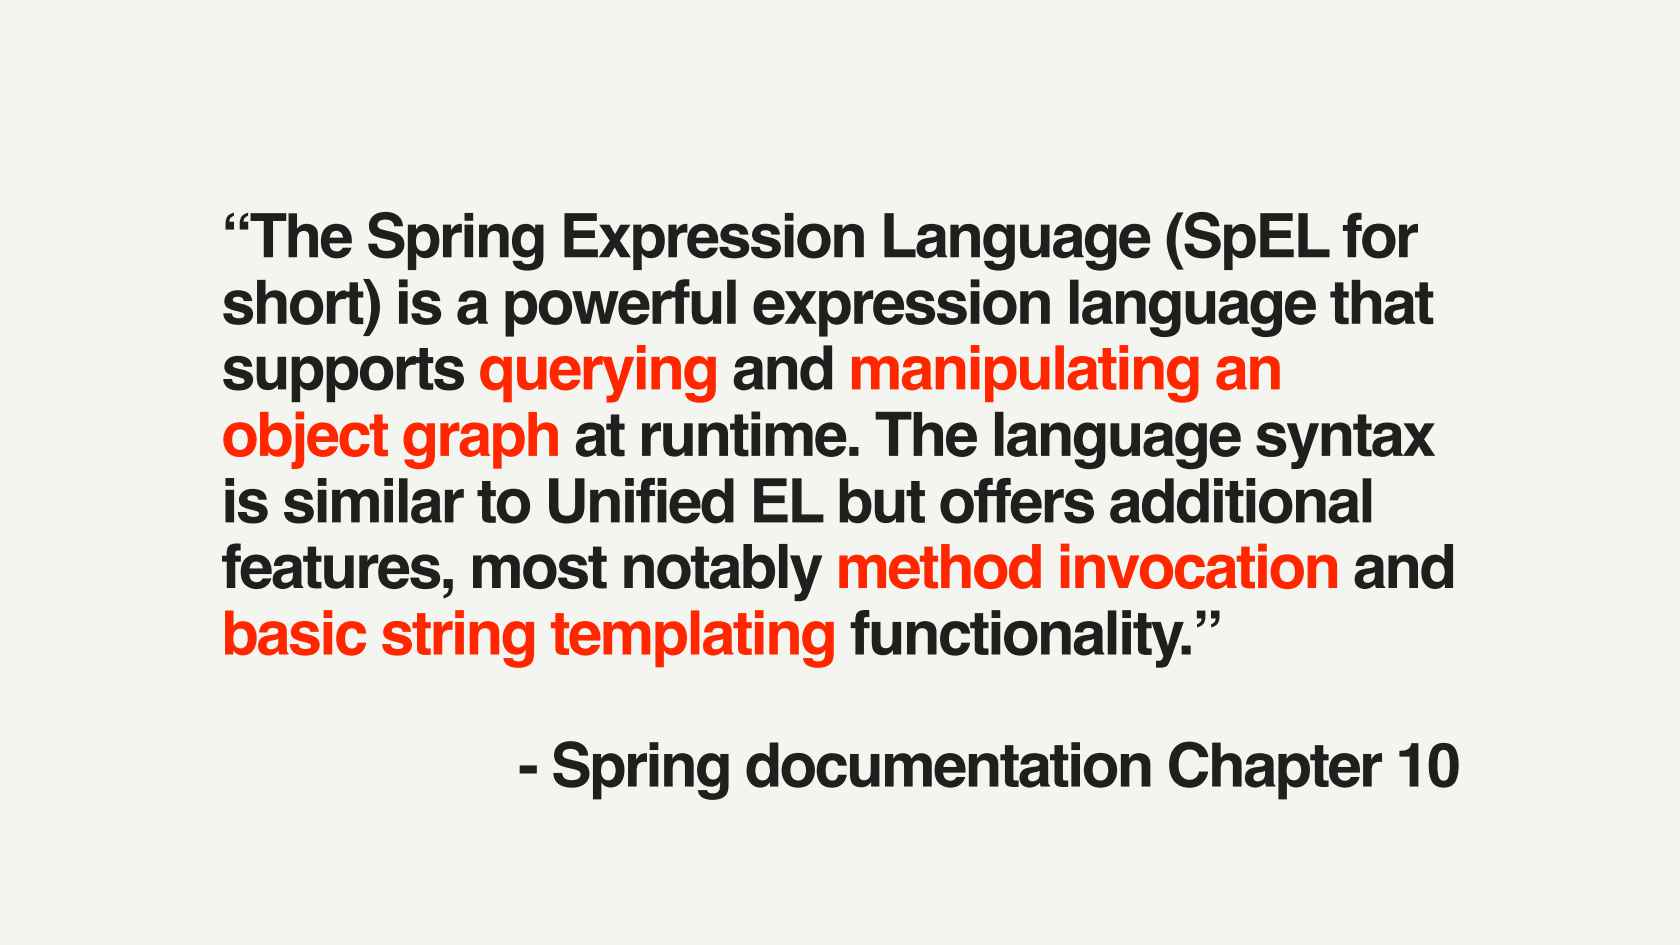 Putting a SpEL on Spinnaker: Evolving an Expression Language